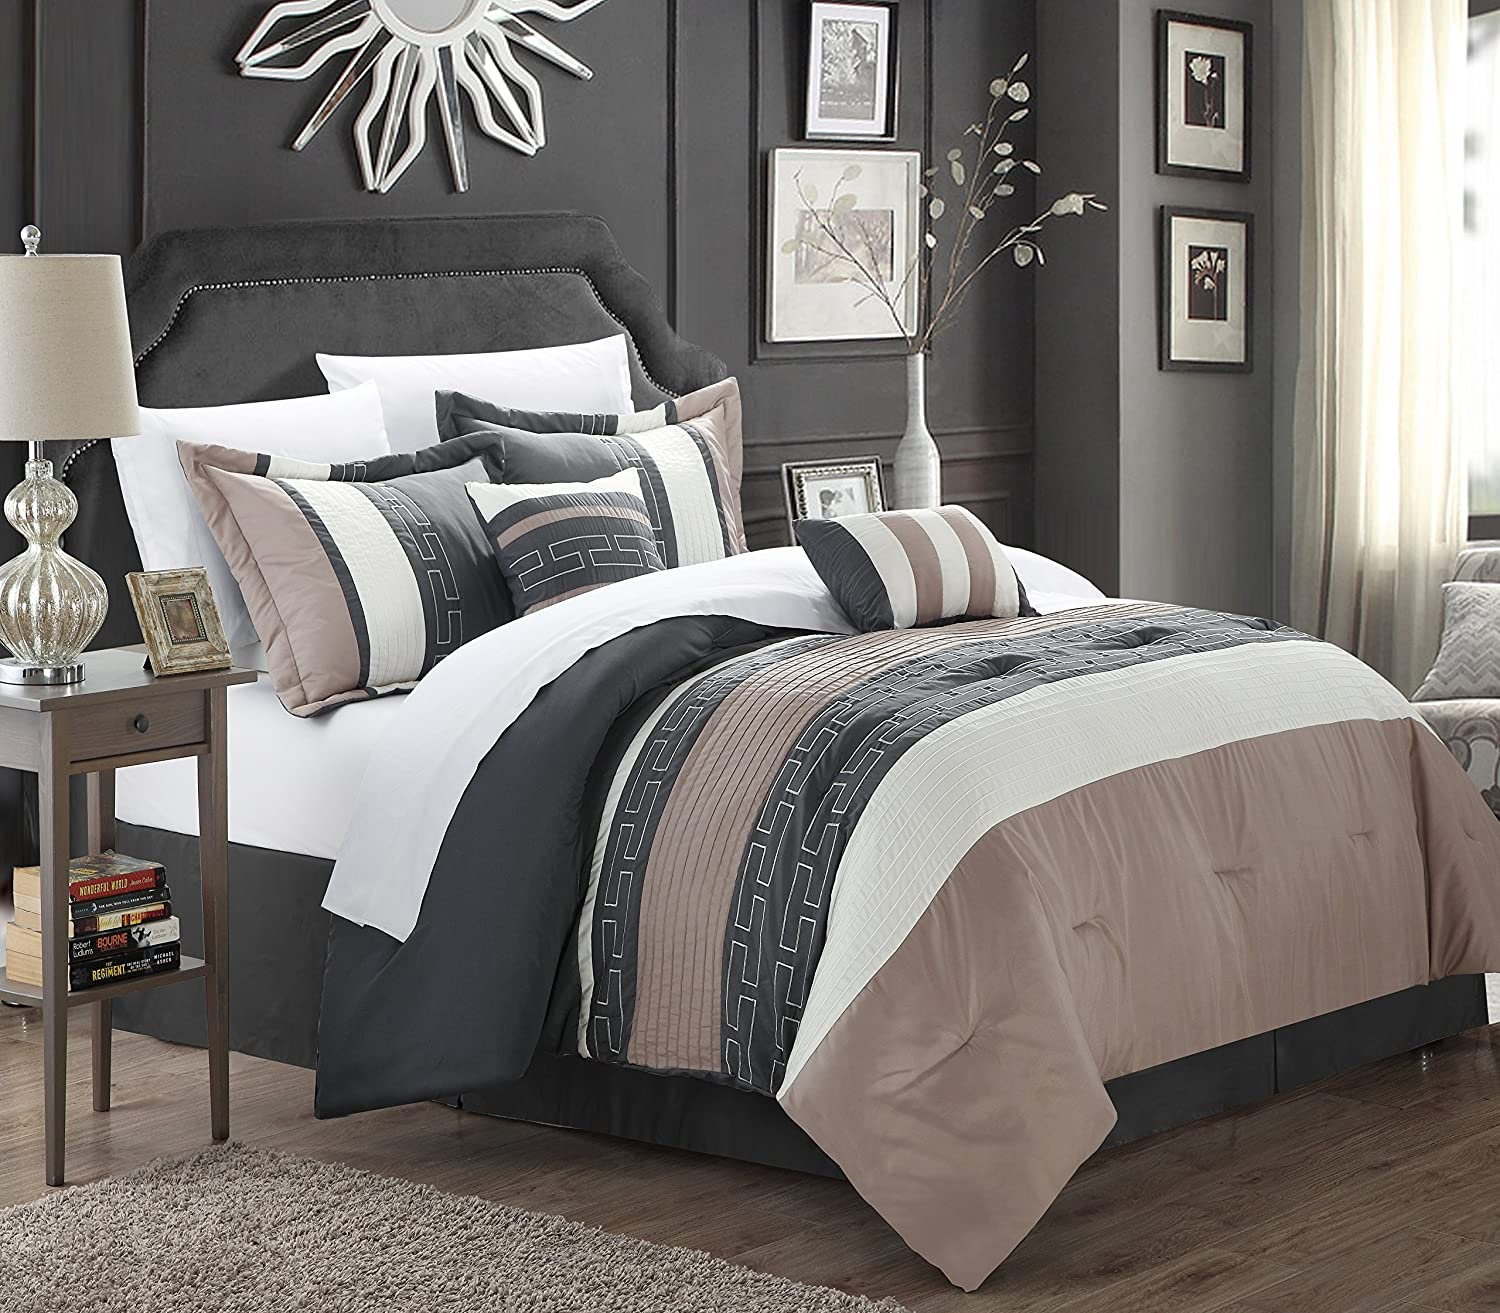 queen bed comforter set Amazon.com: Chic Home Carlton 6 Piece Comforter Set, Queen Size  queen bed comforter set